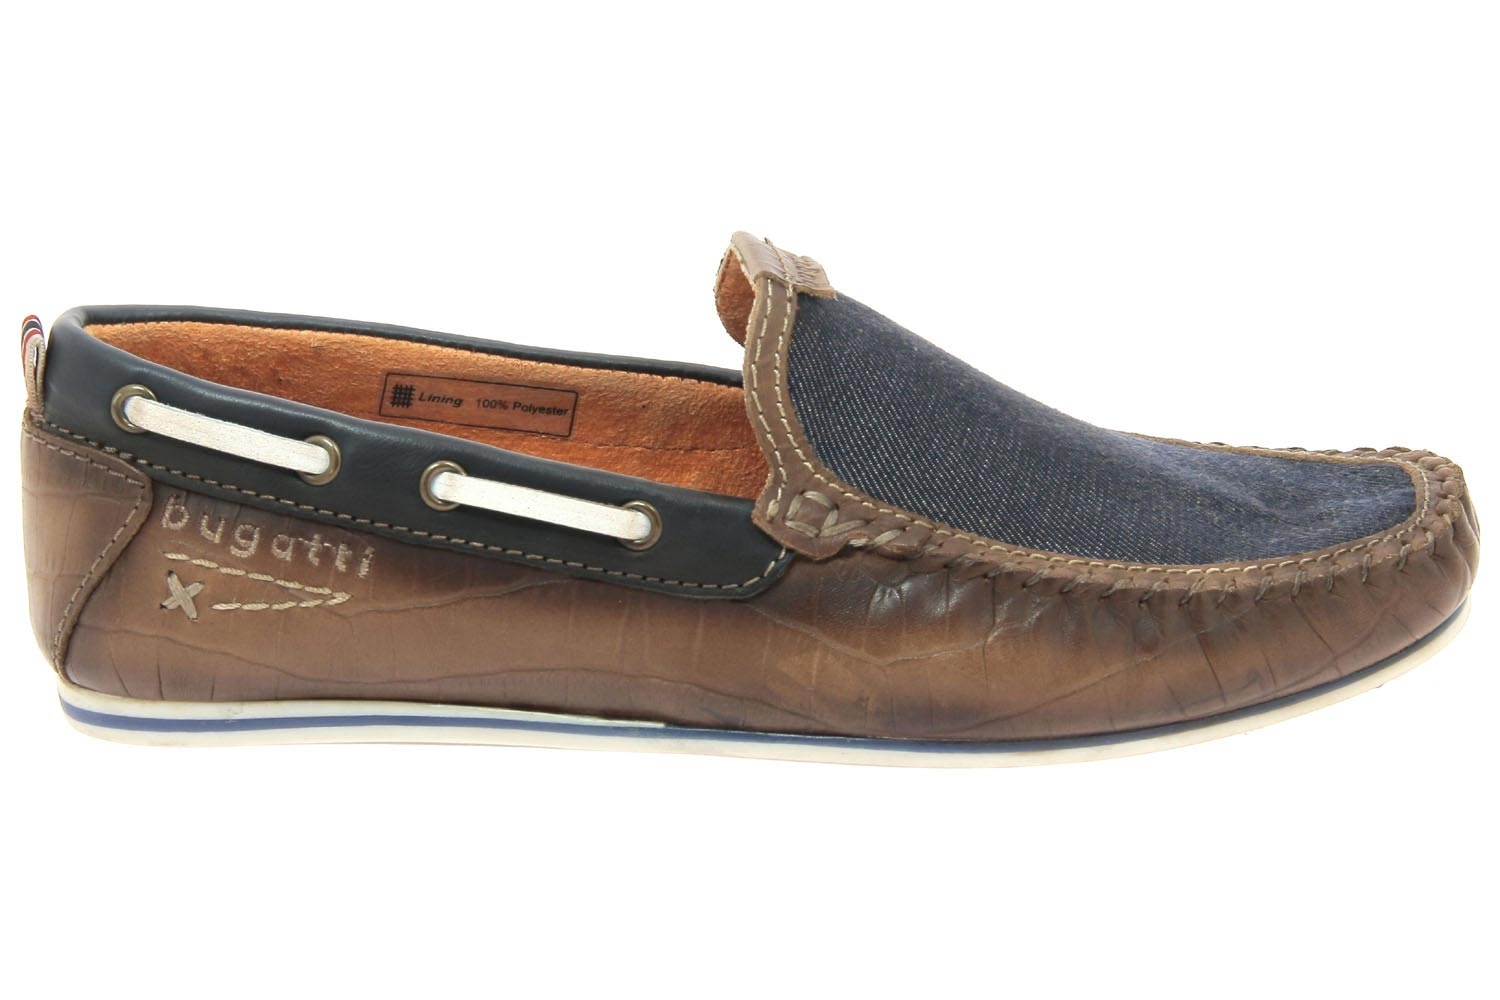 Chaussures Chaussures Bugatti Marron Casual Casual f6yYgb7v